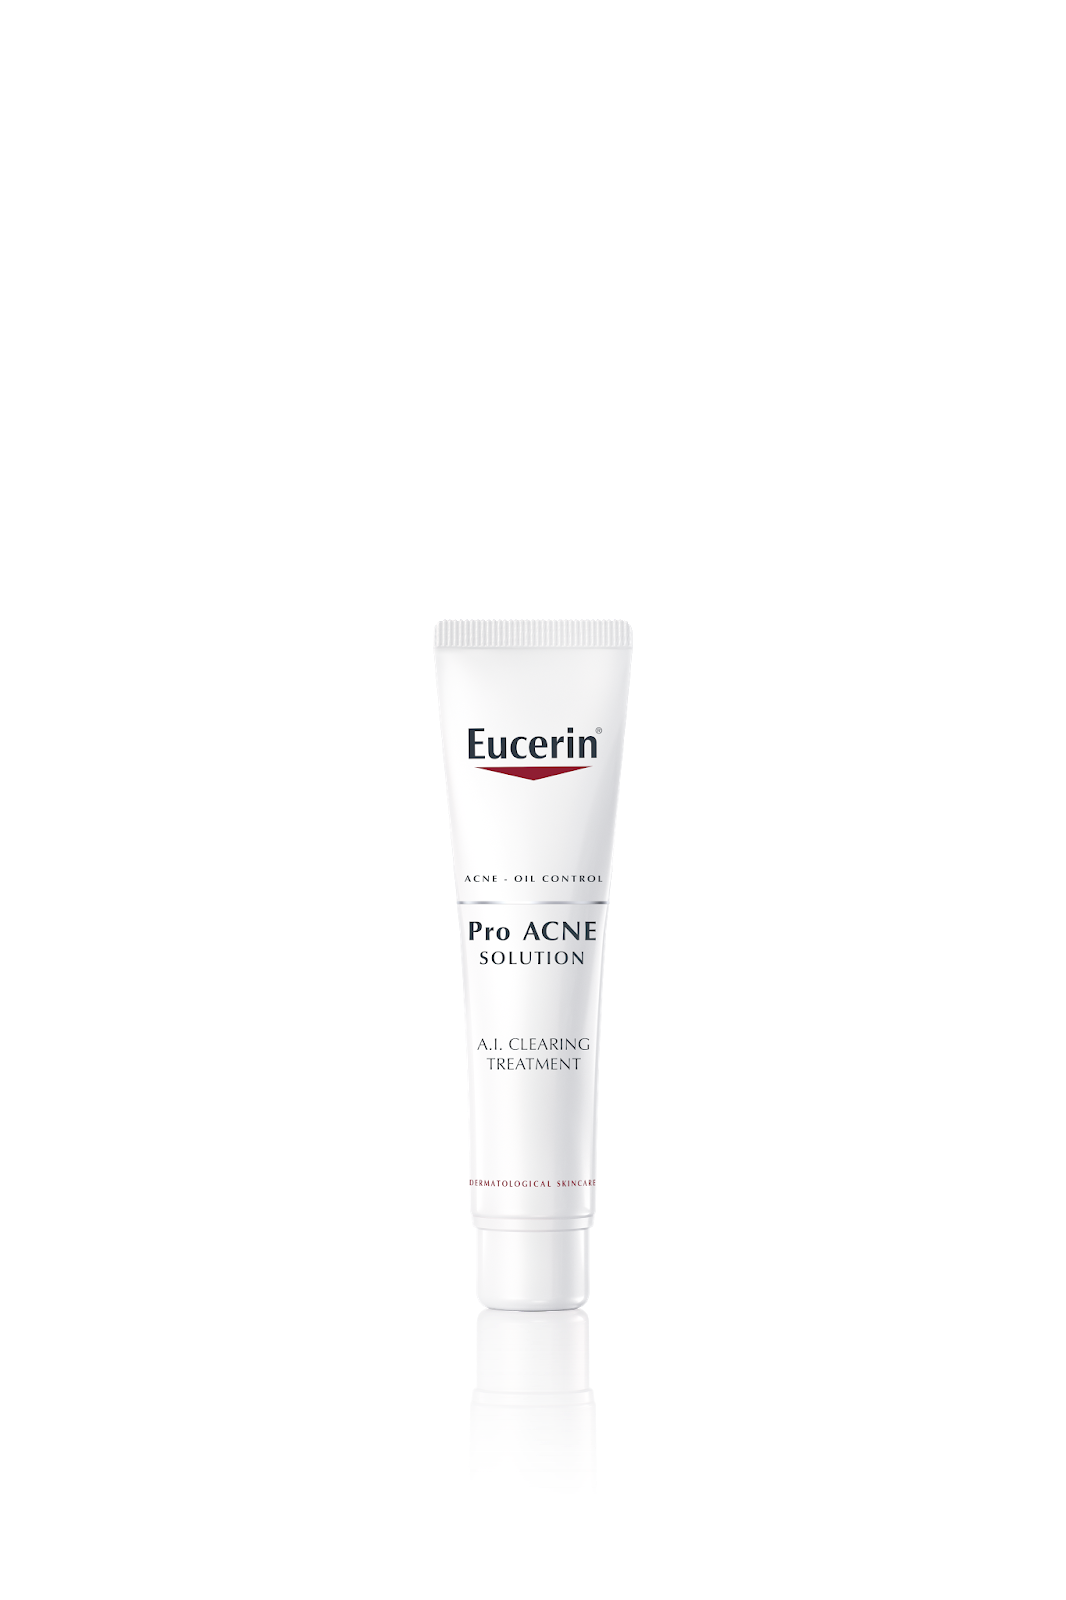 My Freedom Times Diary Eucerin Proacne Solution Ai Clearing Acne Treatment 40ml For Night Time Use Rrp At Rm6200 Has Been Specially Formulated To Reduce The Appearance Of Comedonal